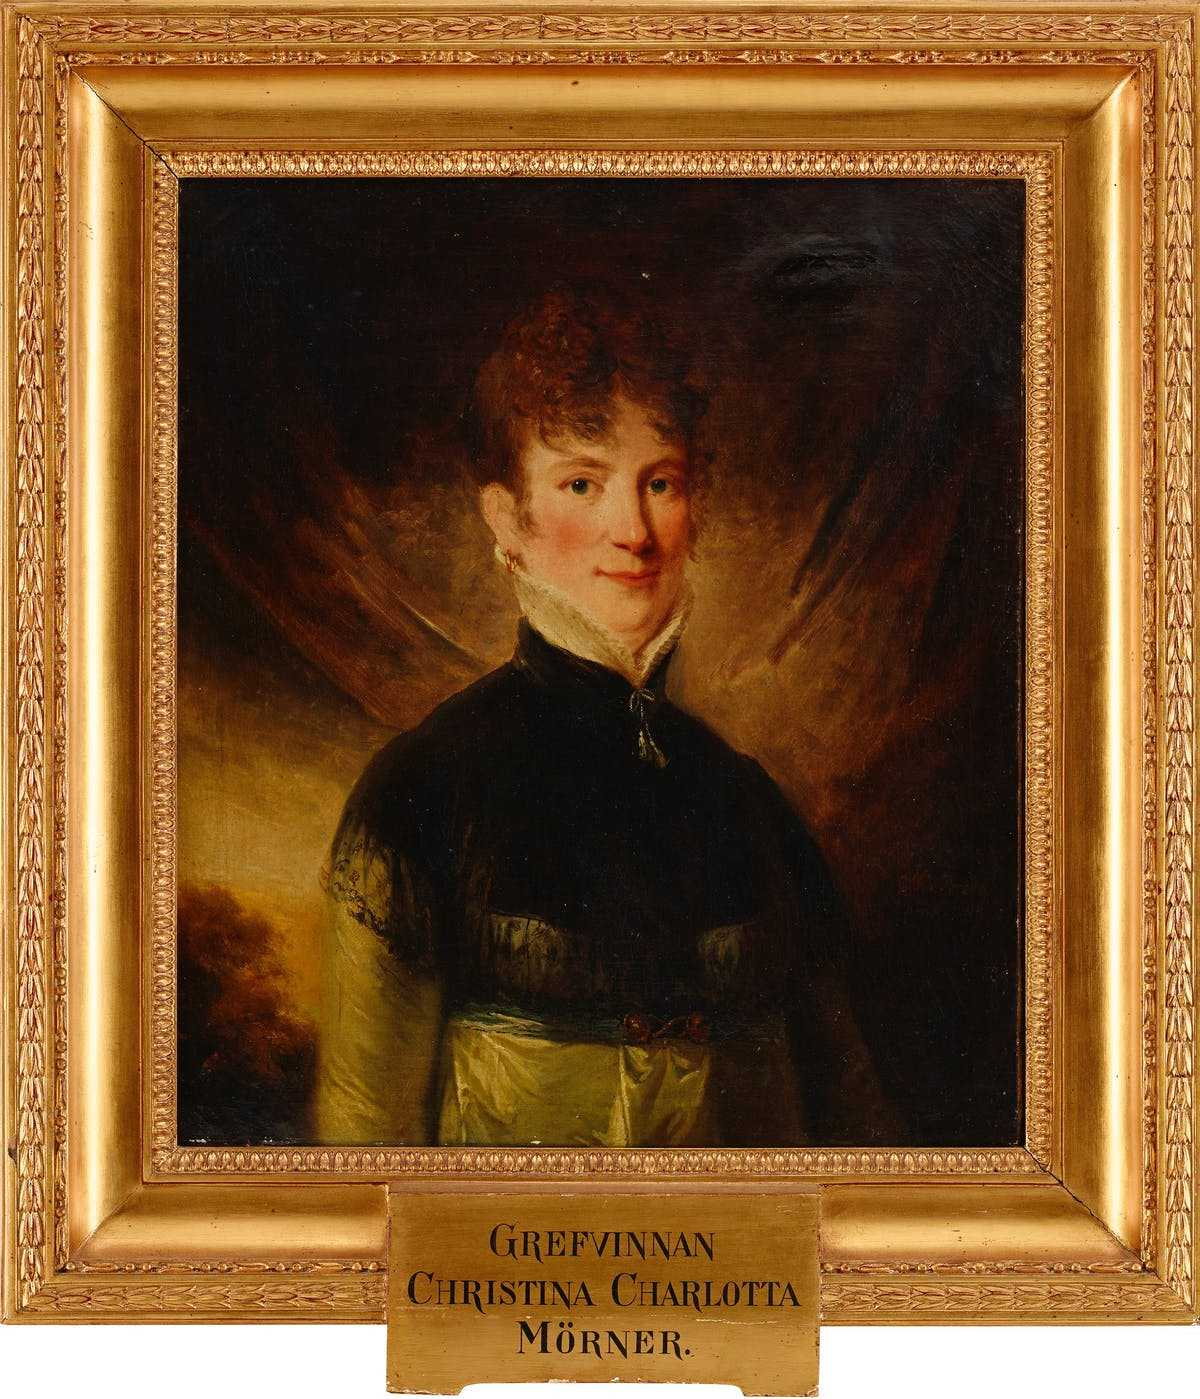 Charlotte Cederström (with birth name on plaque). Portrait by Carl Fredrik von Breda, 1804 (privately owned)